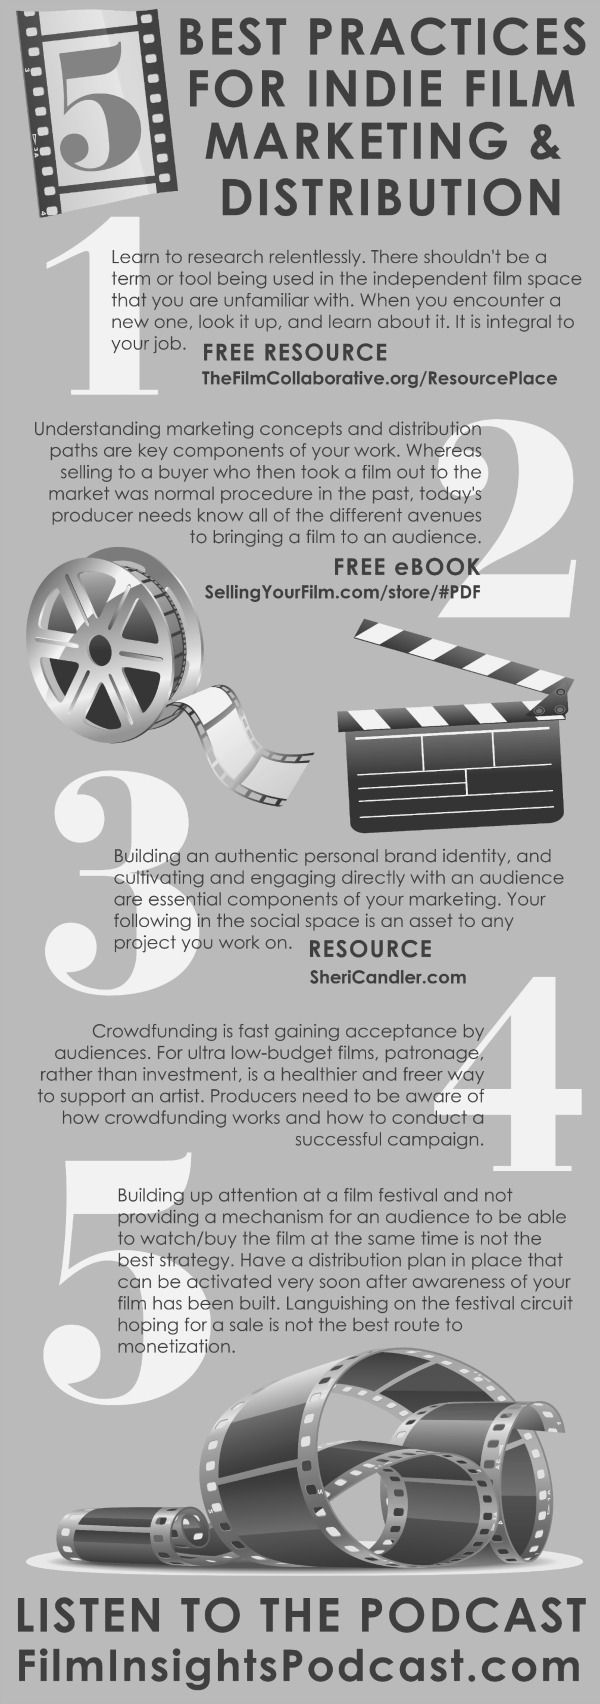 [Film Insights Podcast] Learn how to easily stay up-to-date on all the latest filmmaker tools & resources - #Infographic #podcast #Interview